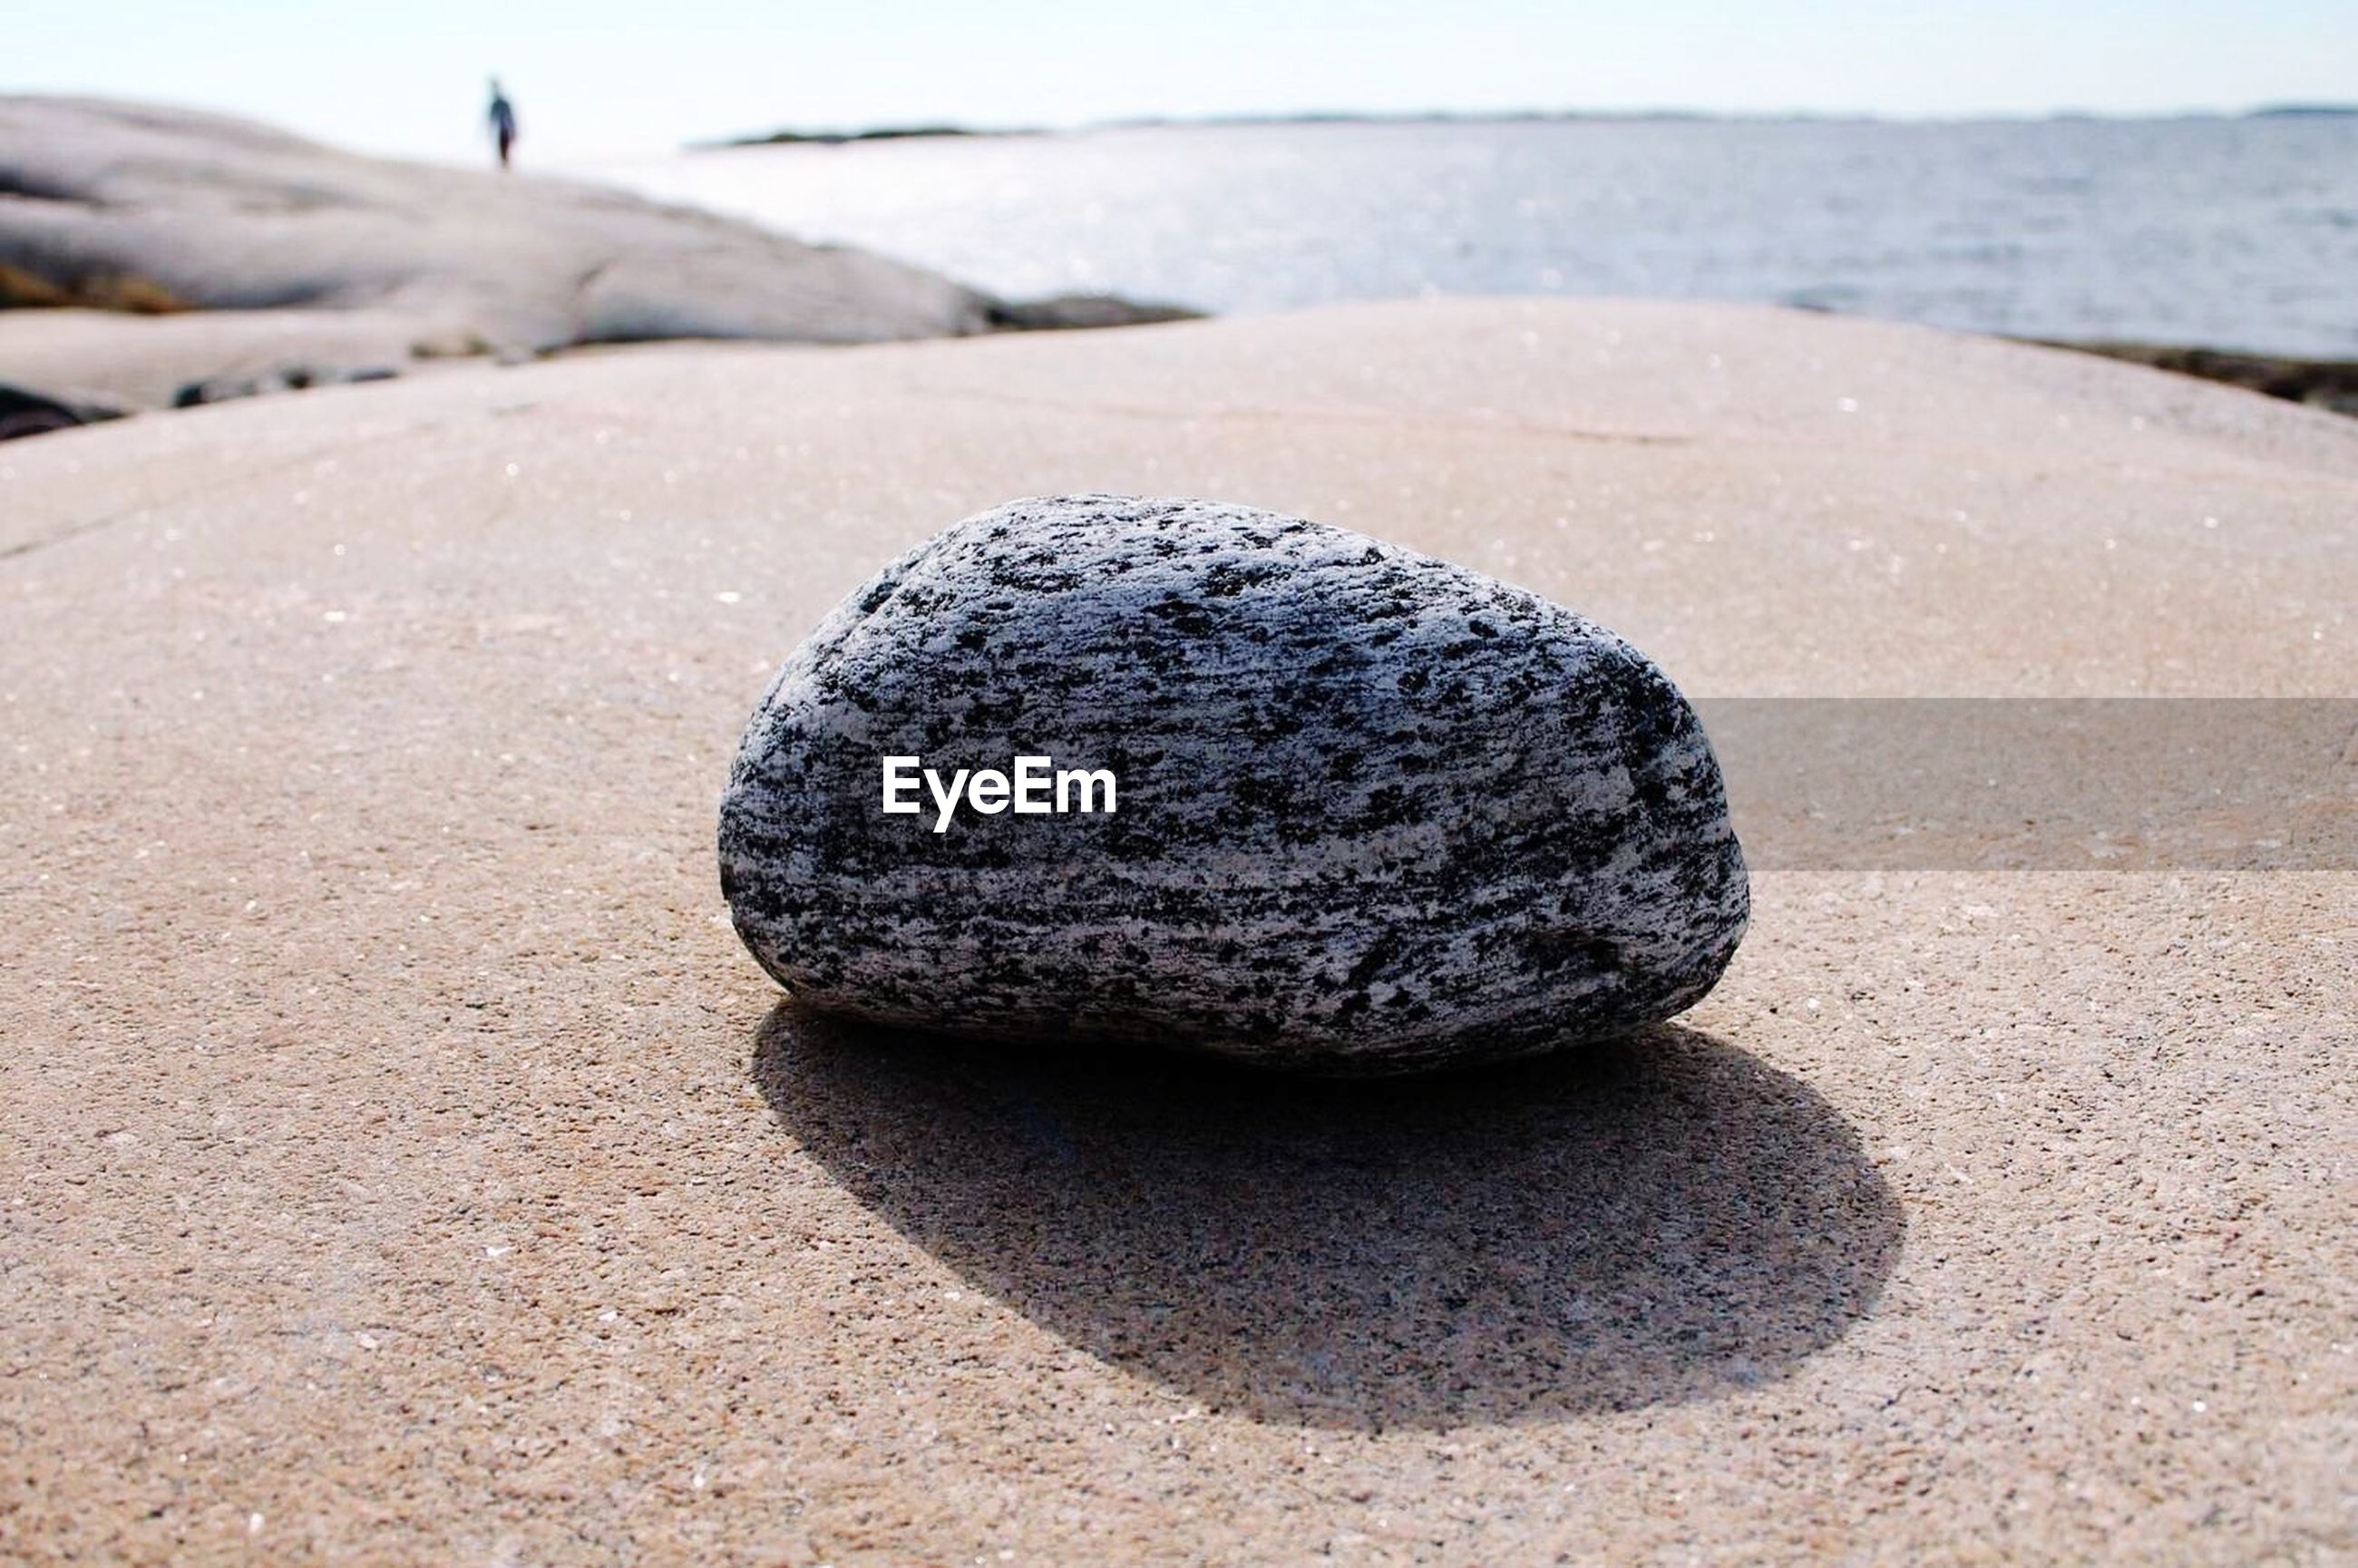 Pebble on rock formation